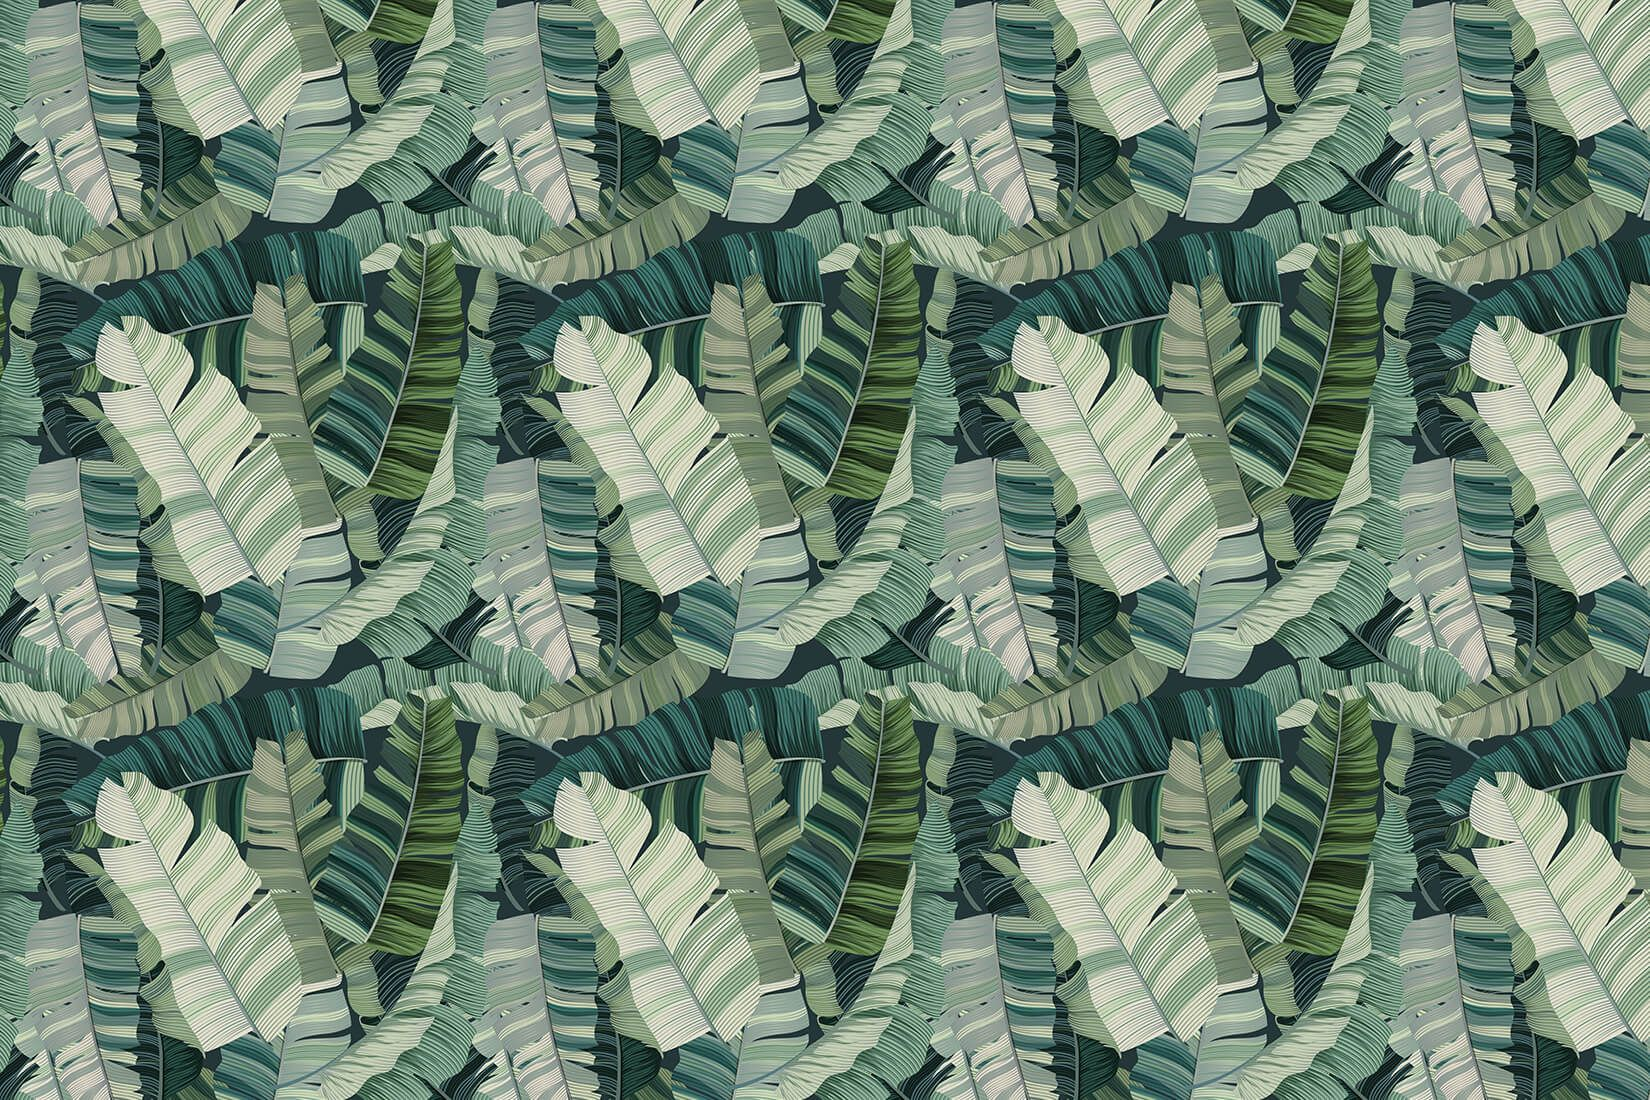 3D Mixed Tropical Camo Leaf Wallpaper (With images) Leaf